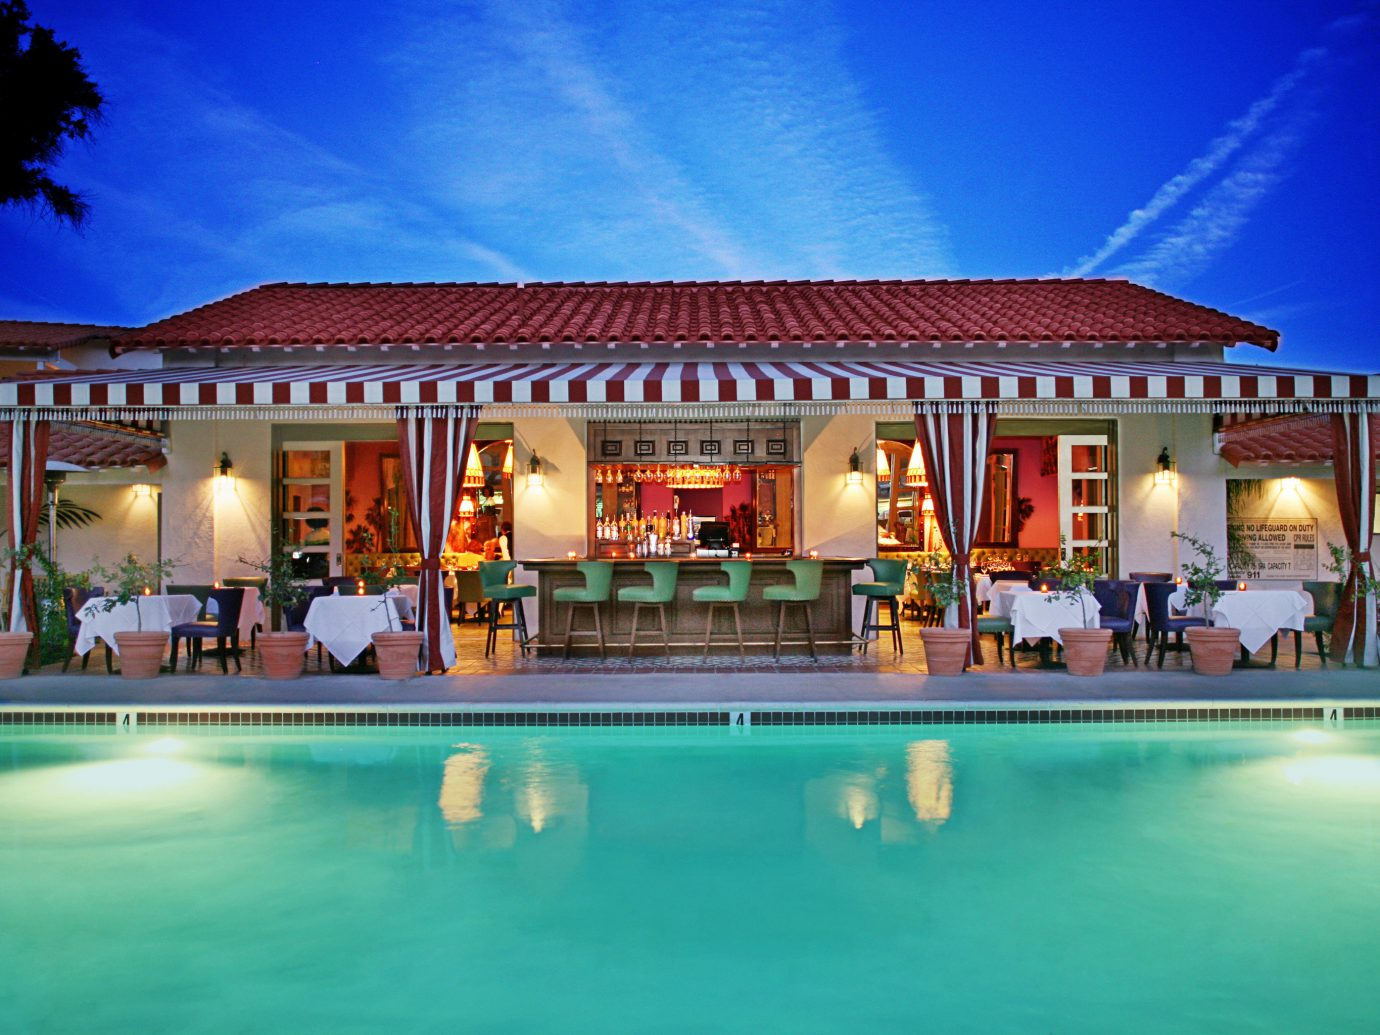 Bar Boutique Budget Exterior Pool building sky Resort outdoor swimming pool leisure property estate vacation Villa resort town hacienda mansion home palace blue hotel